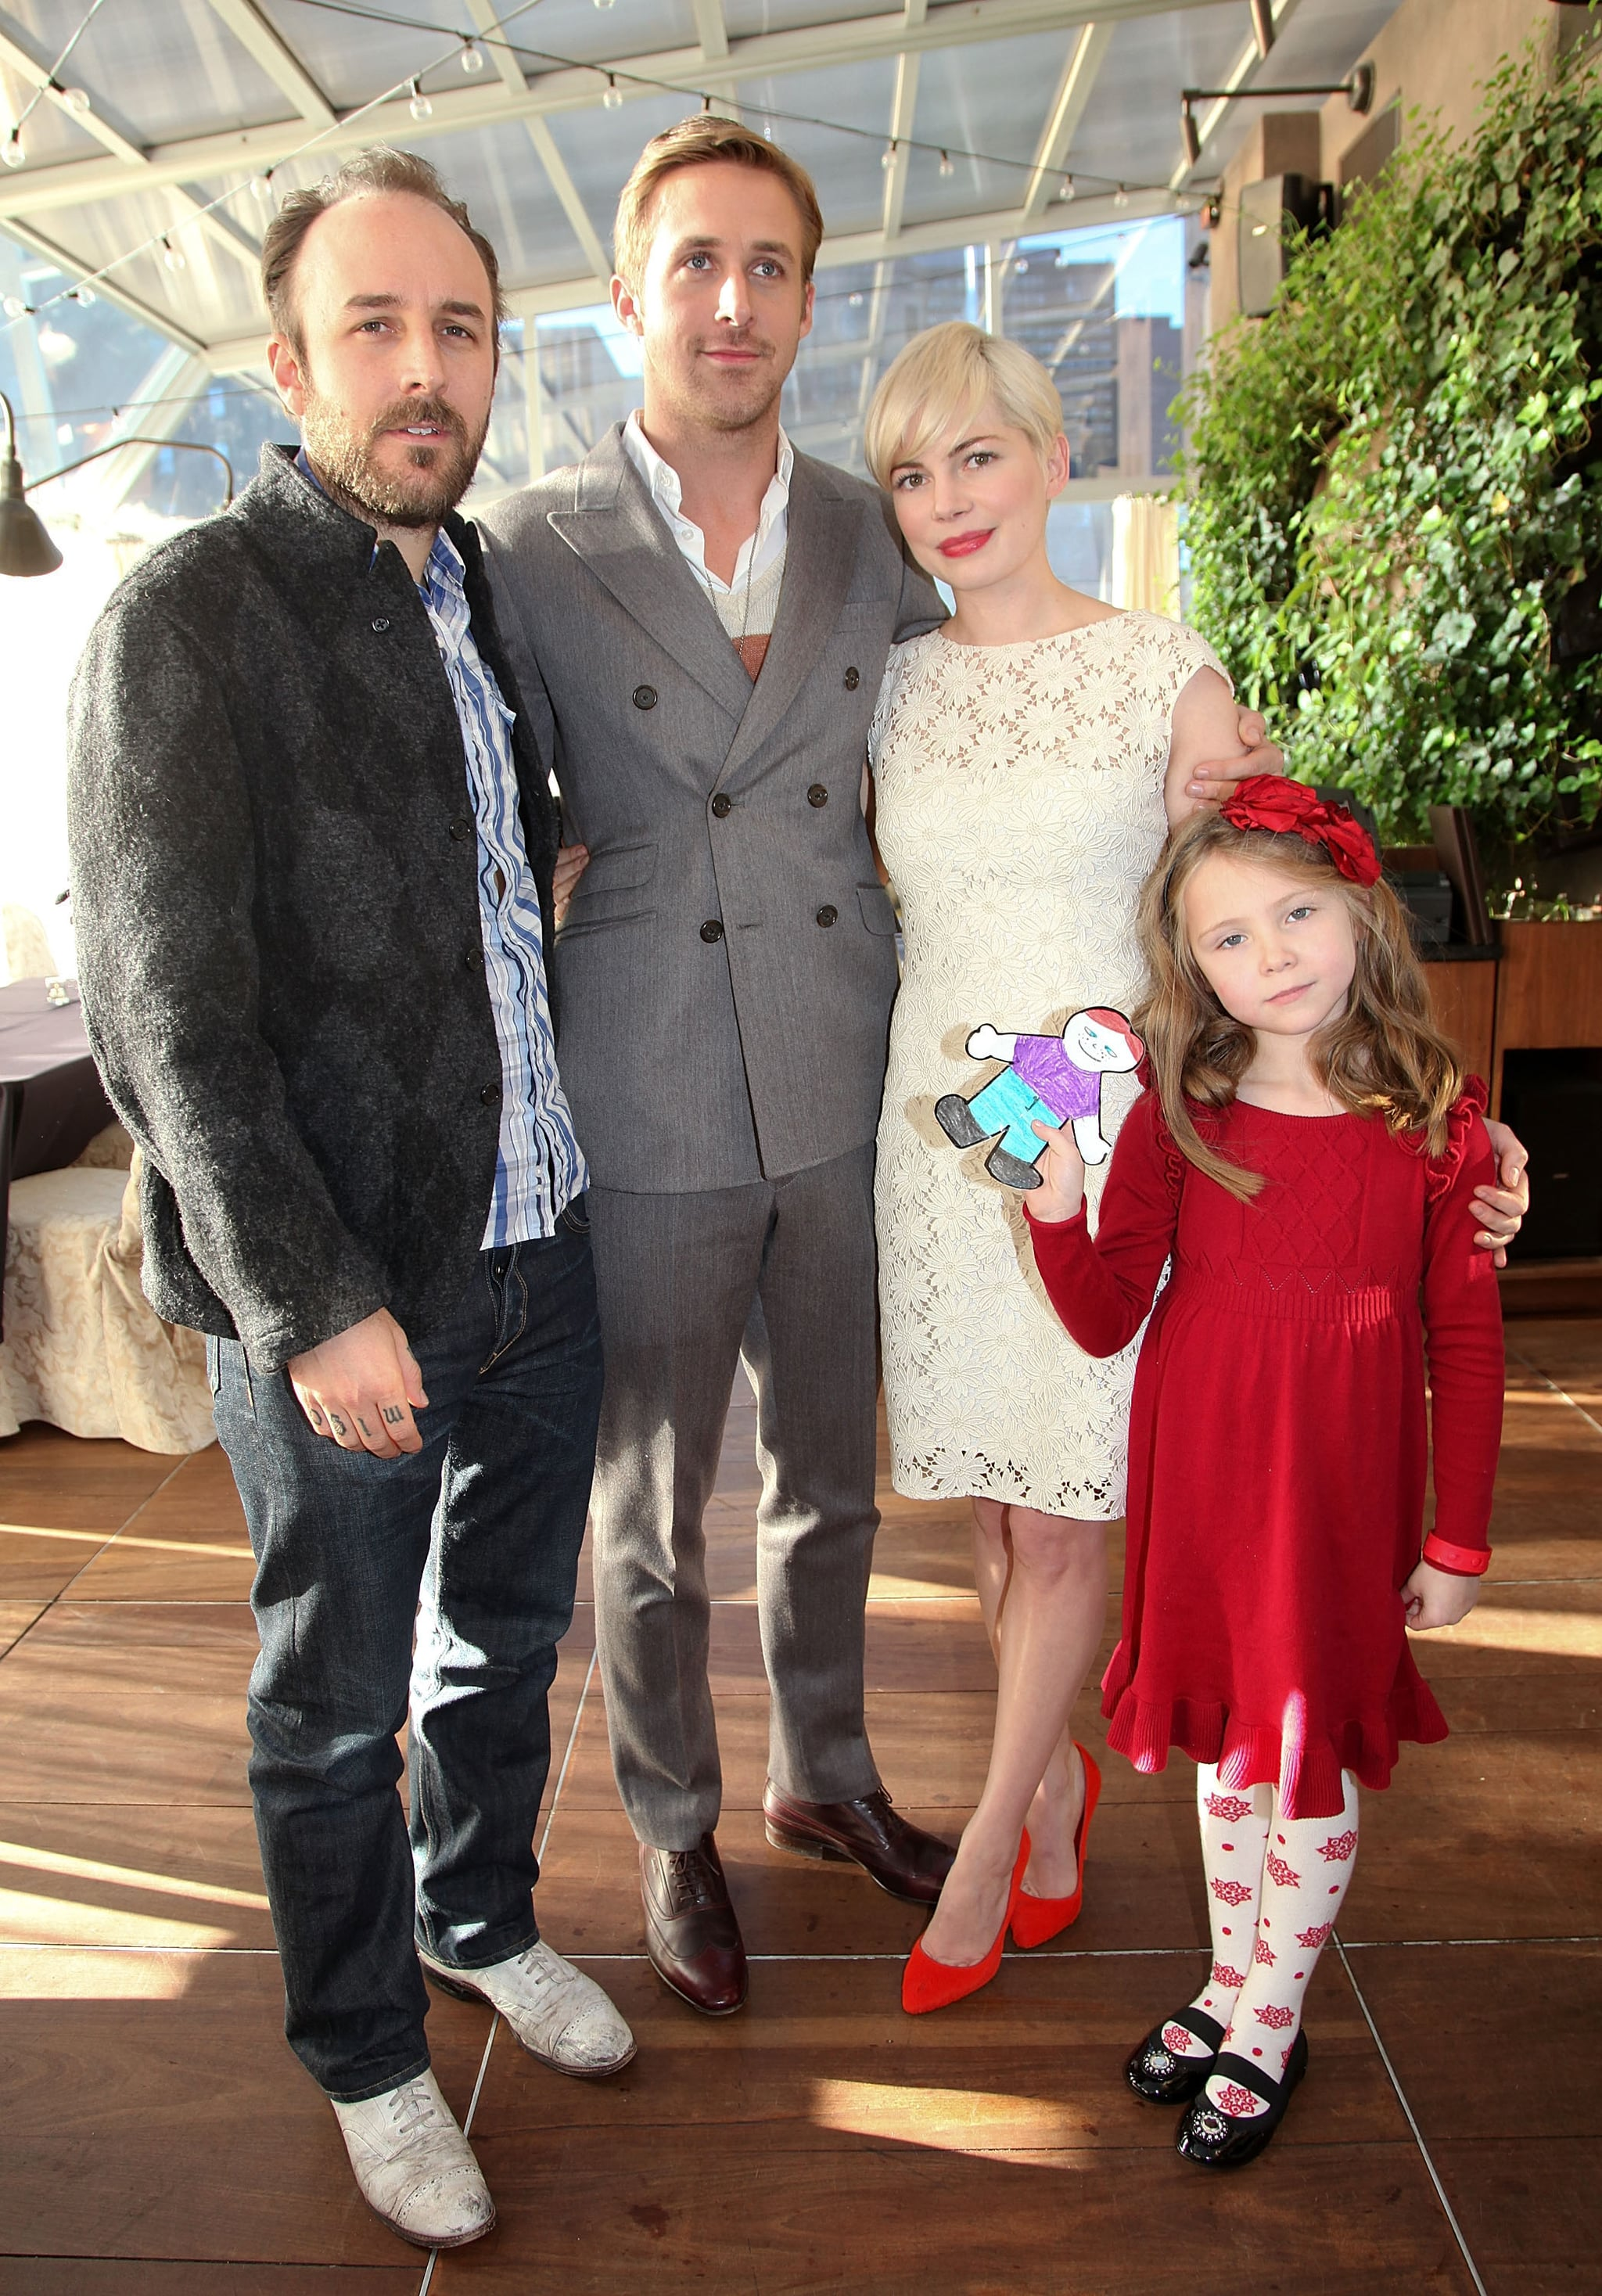 Michelle williams and ryan gosling dating 2011